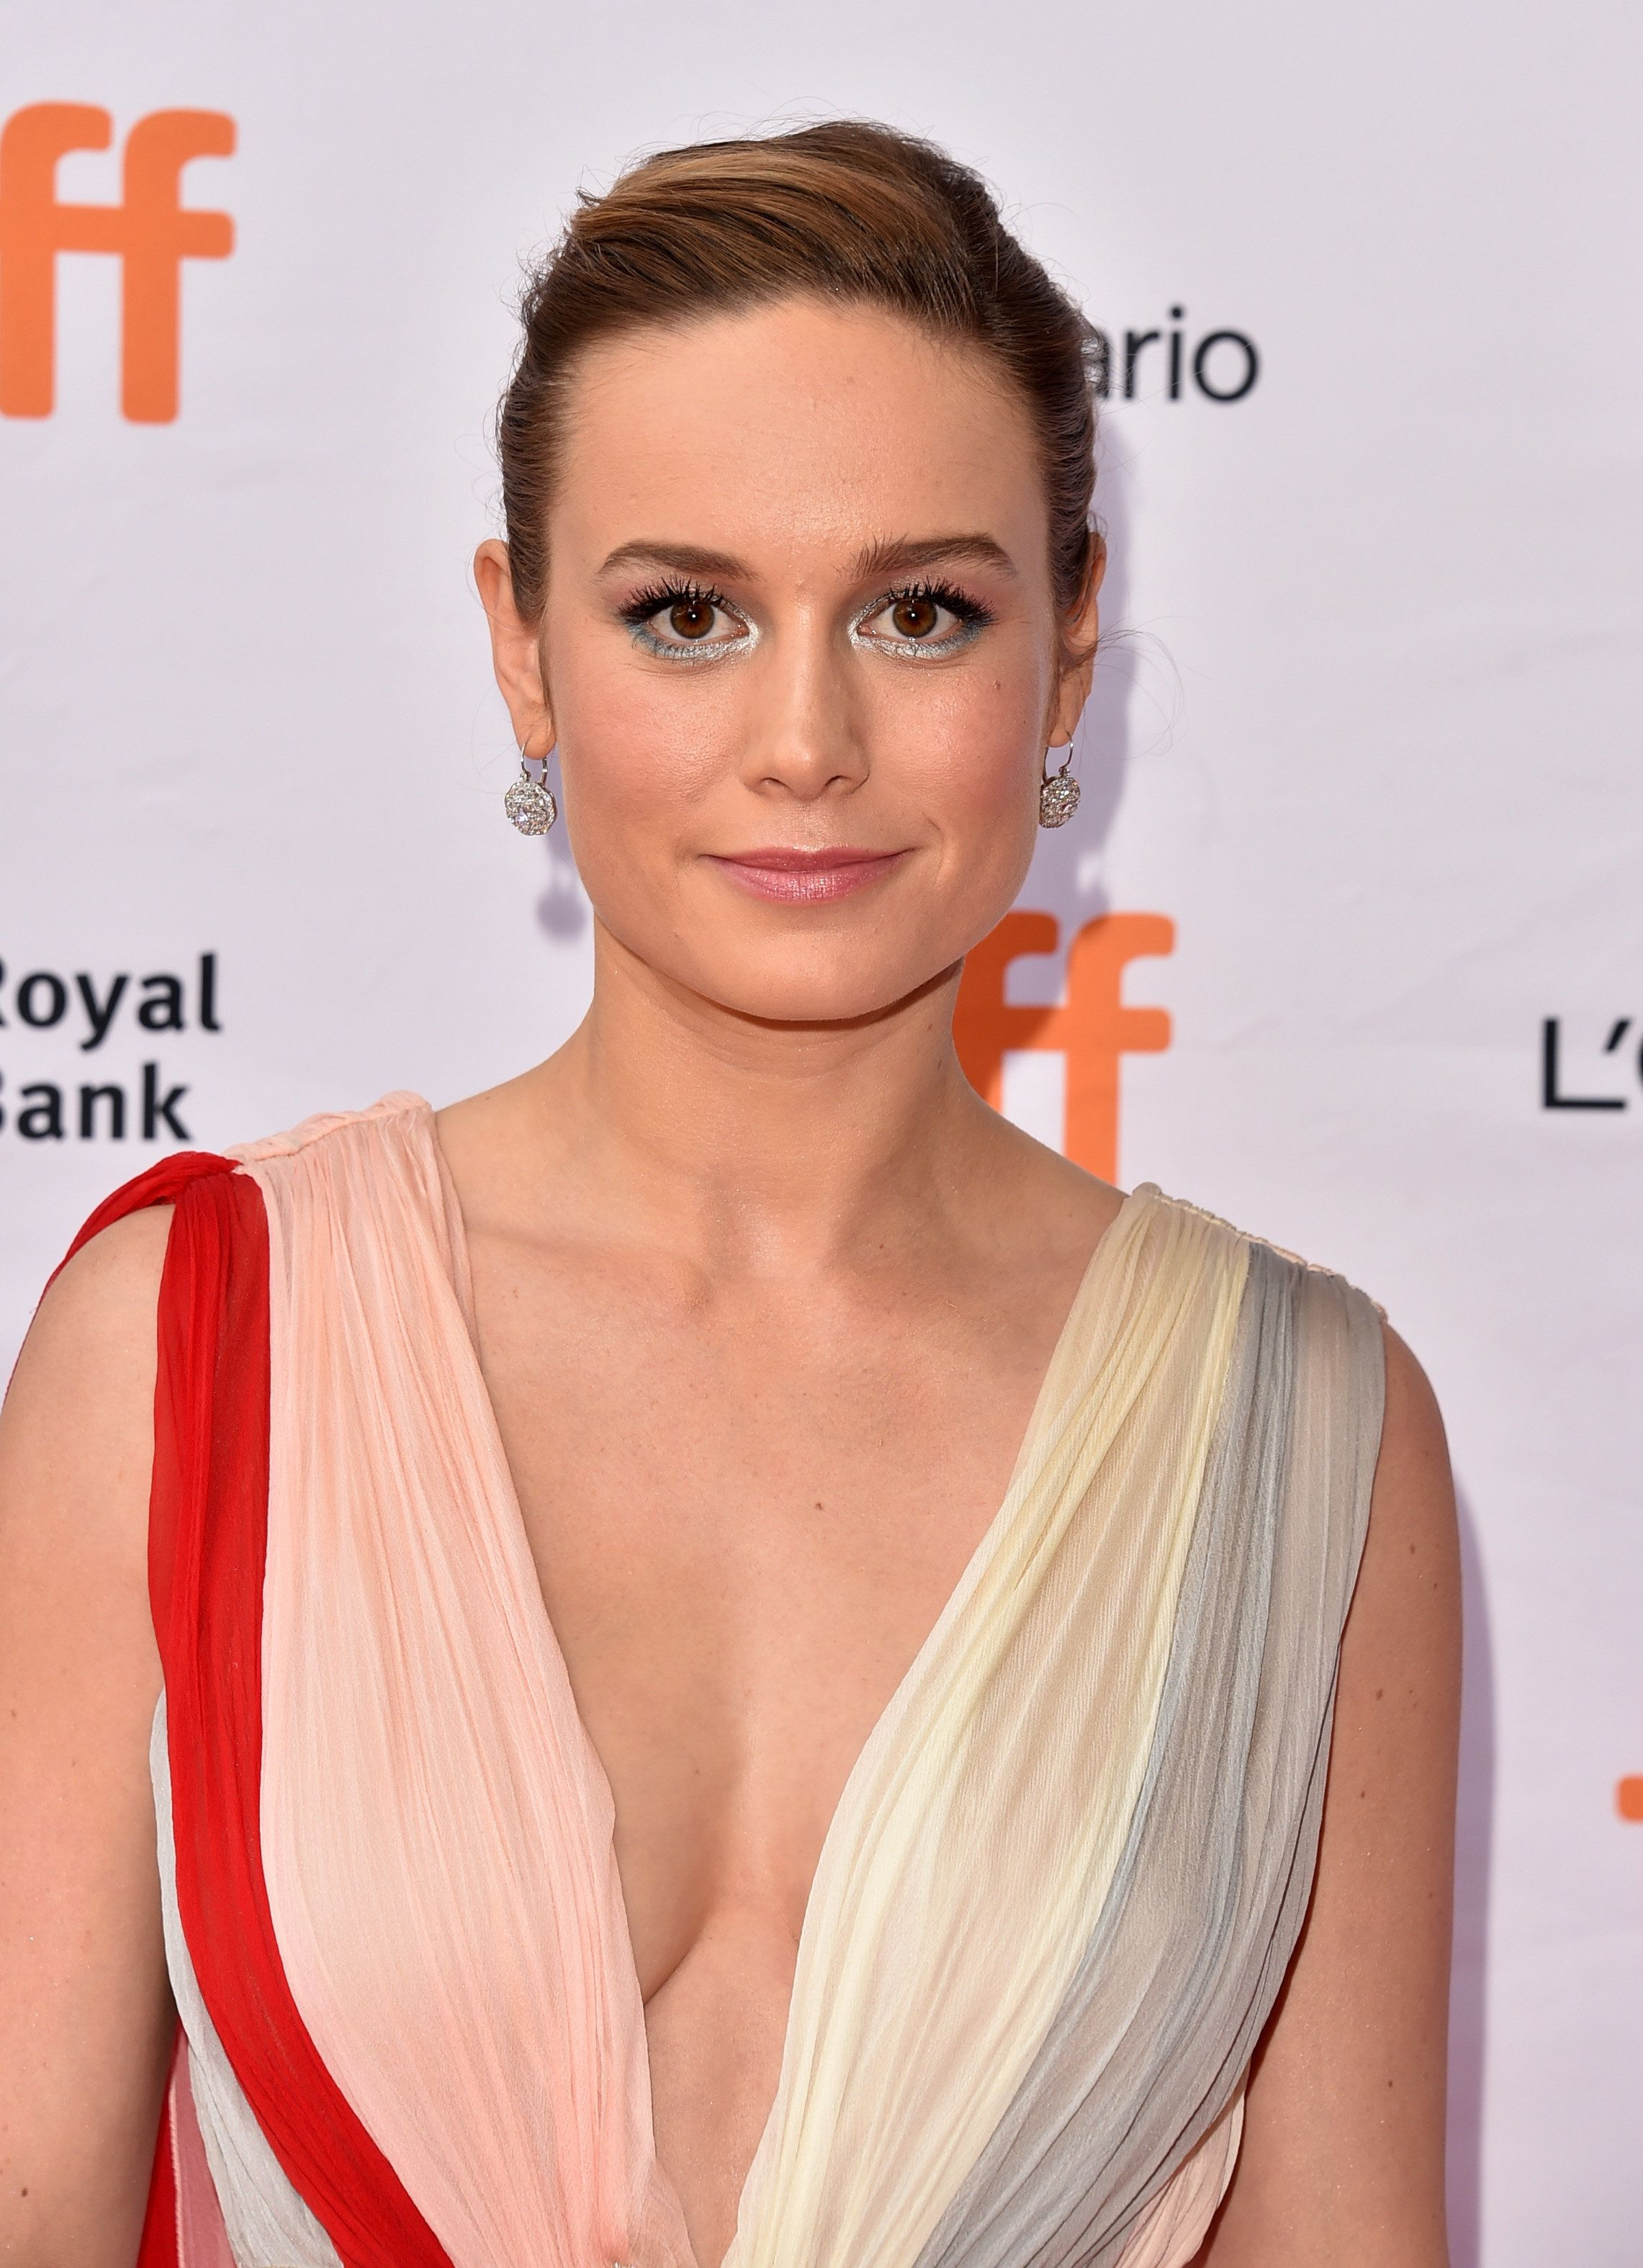 TORONTO, ON - SEPTEMBER 11:  Brie Larson attends the 'Unicorn Store' premiere during the 2017 Toronto International Film Festival at Ryerson Theatre on September 11, 2017 in Toronto, Canada.  (Photo by Alberto E. Rodriguez/Getty Images)